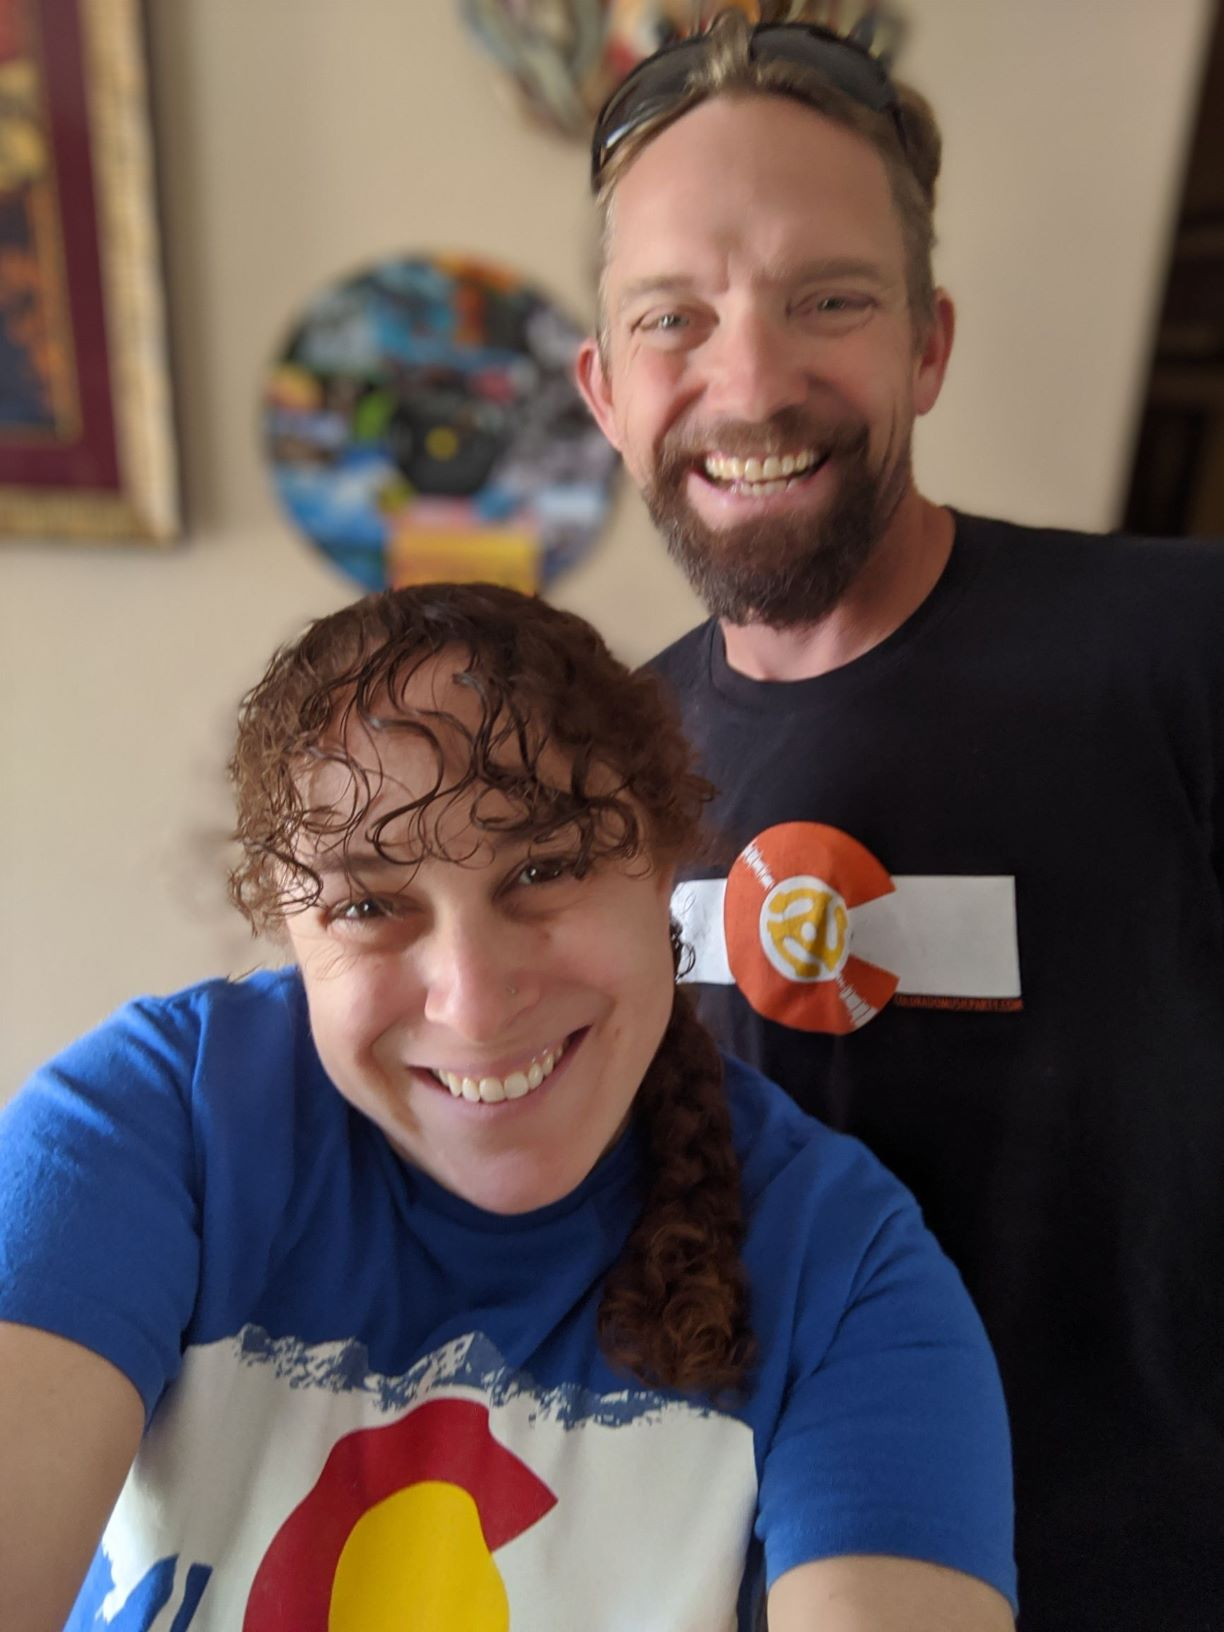 These are the radiant smiles of 2 Coloradans who just bought their first home!